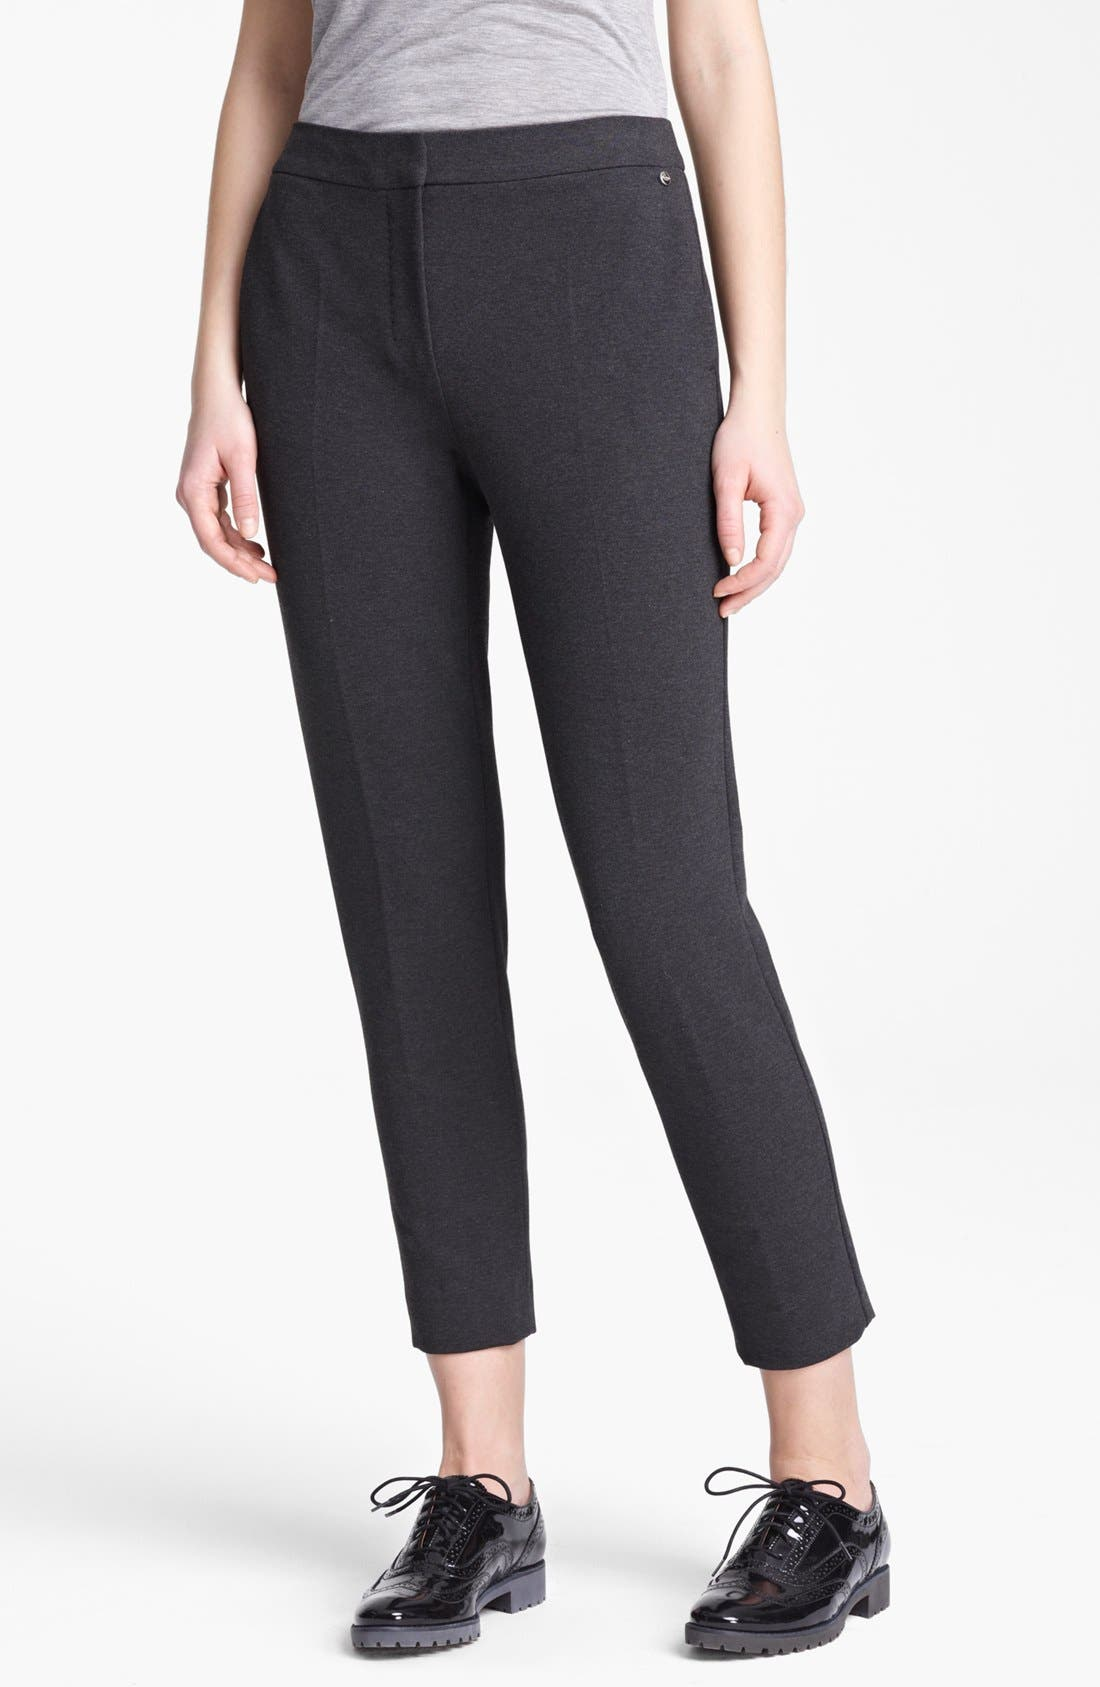 Alternate Image 1 Selected - Max Mara Slim Jersey Pants